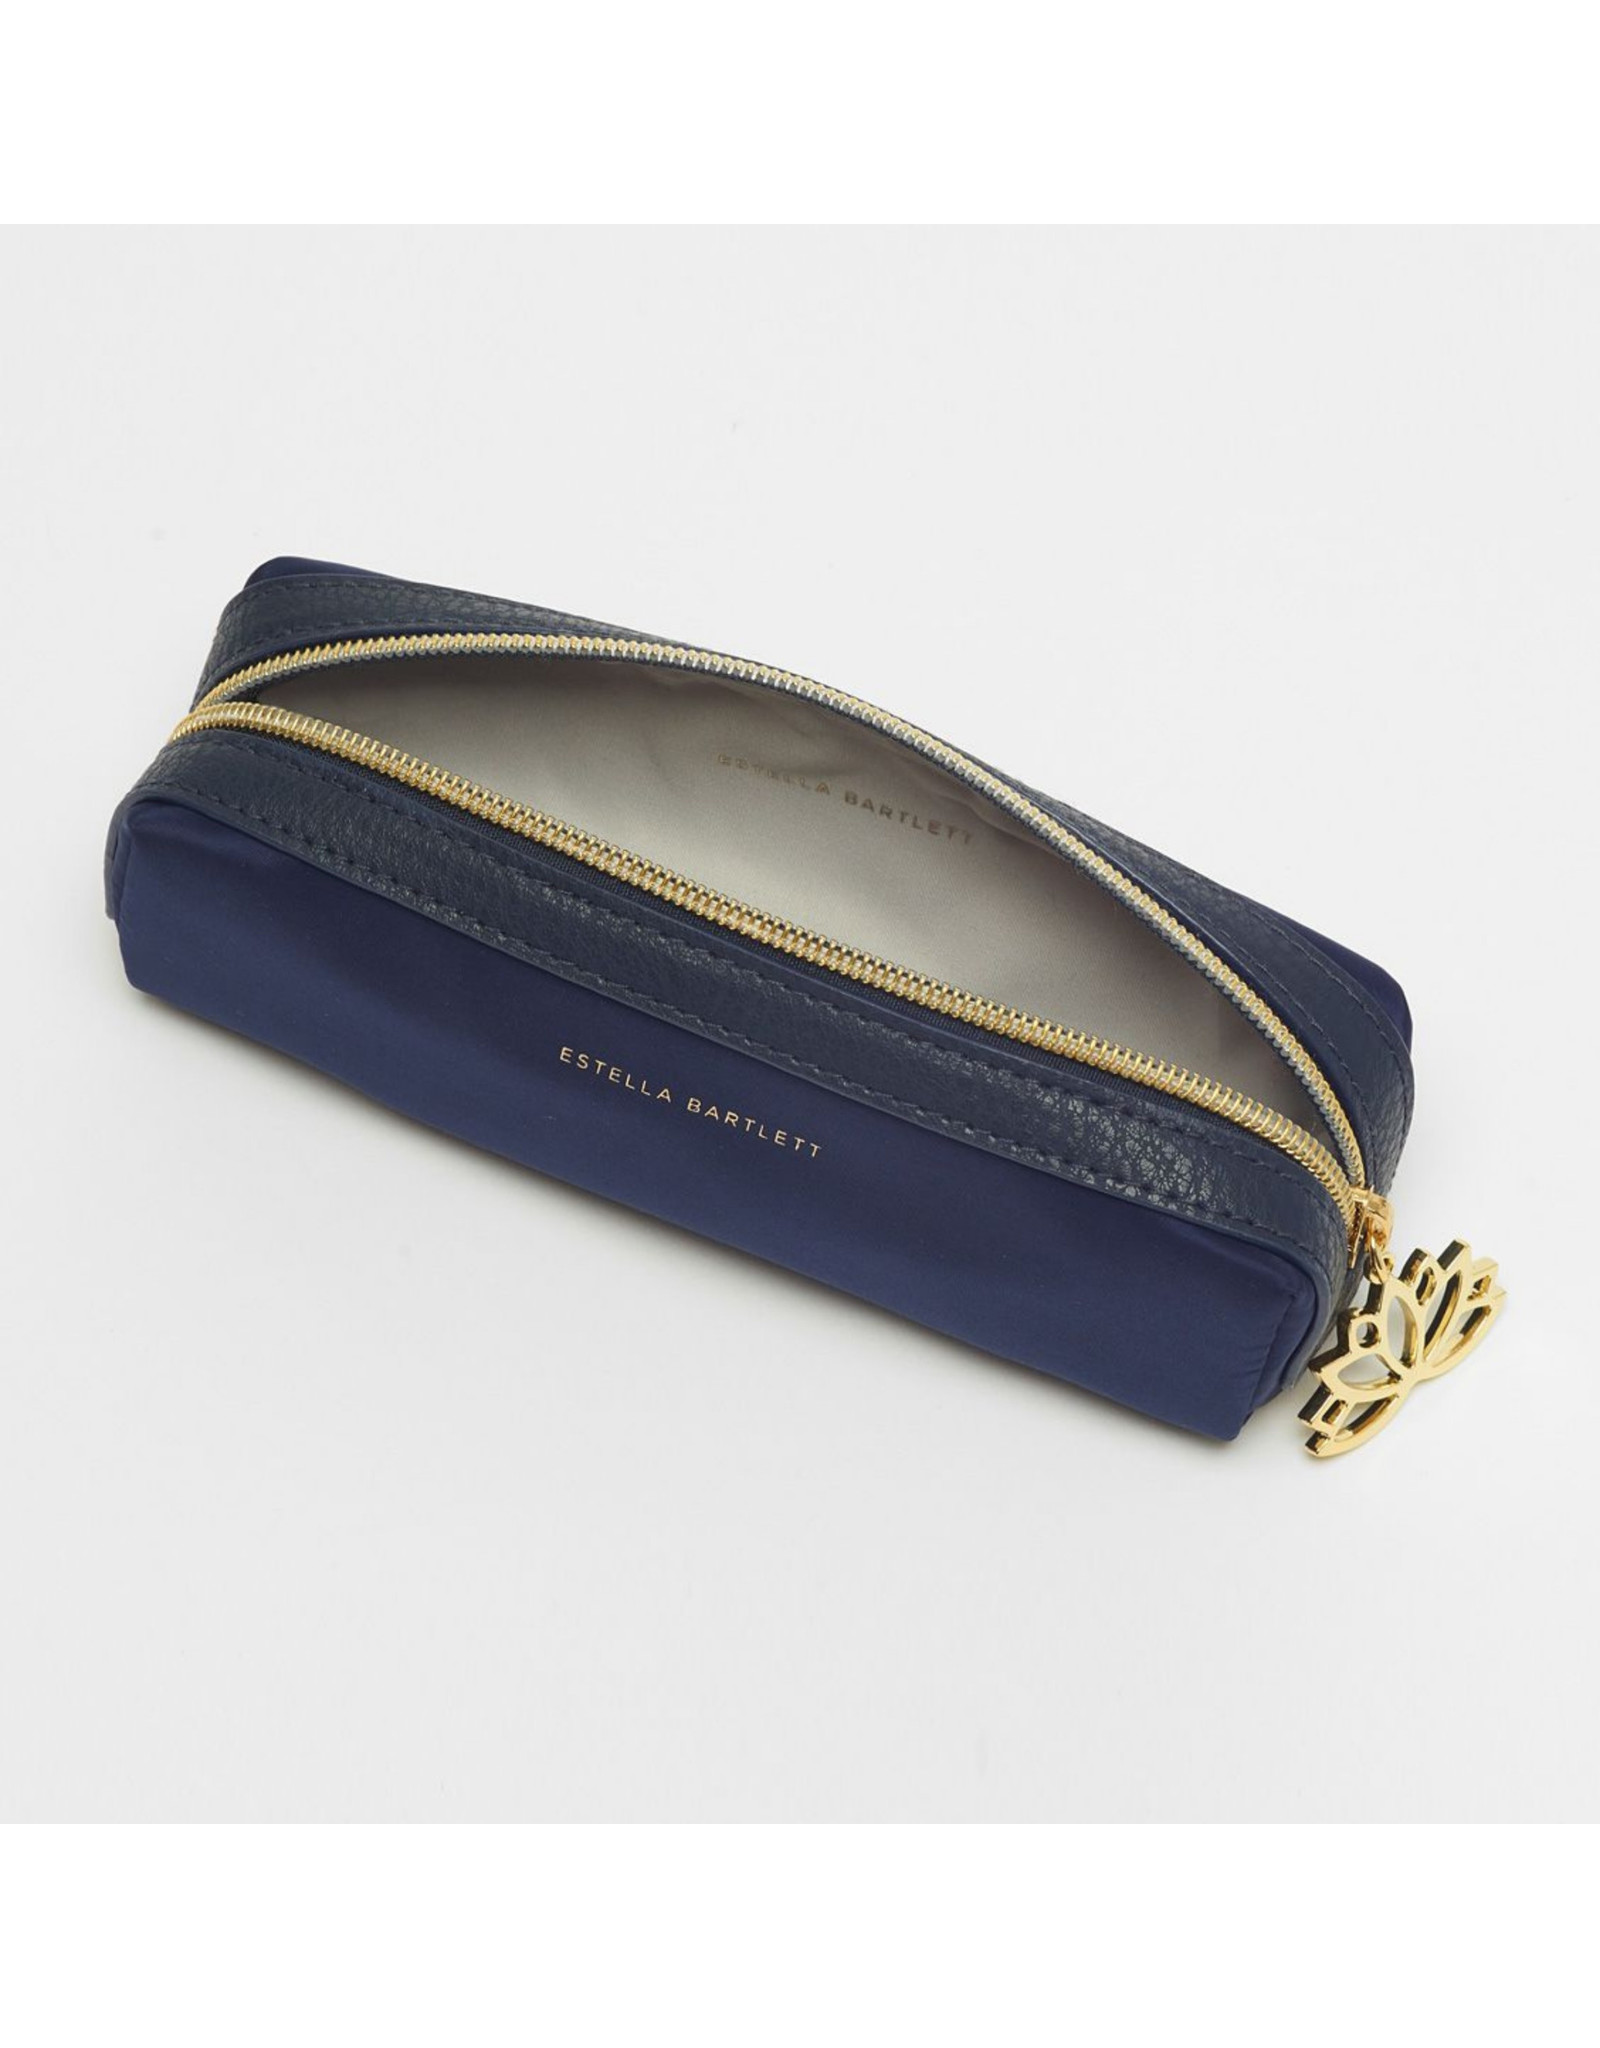 Estella Bartlett Charmed Lotus - Make-uptas / Pennenzak Navy